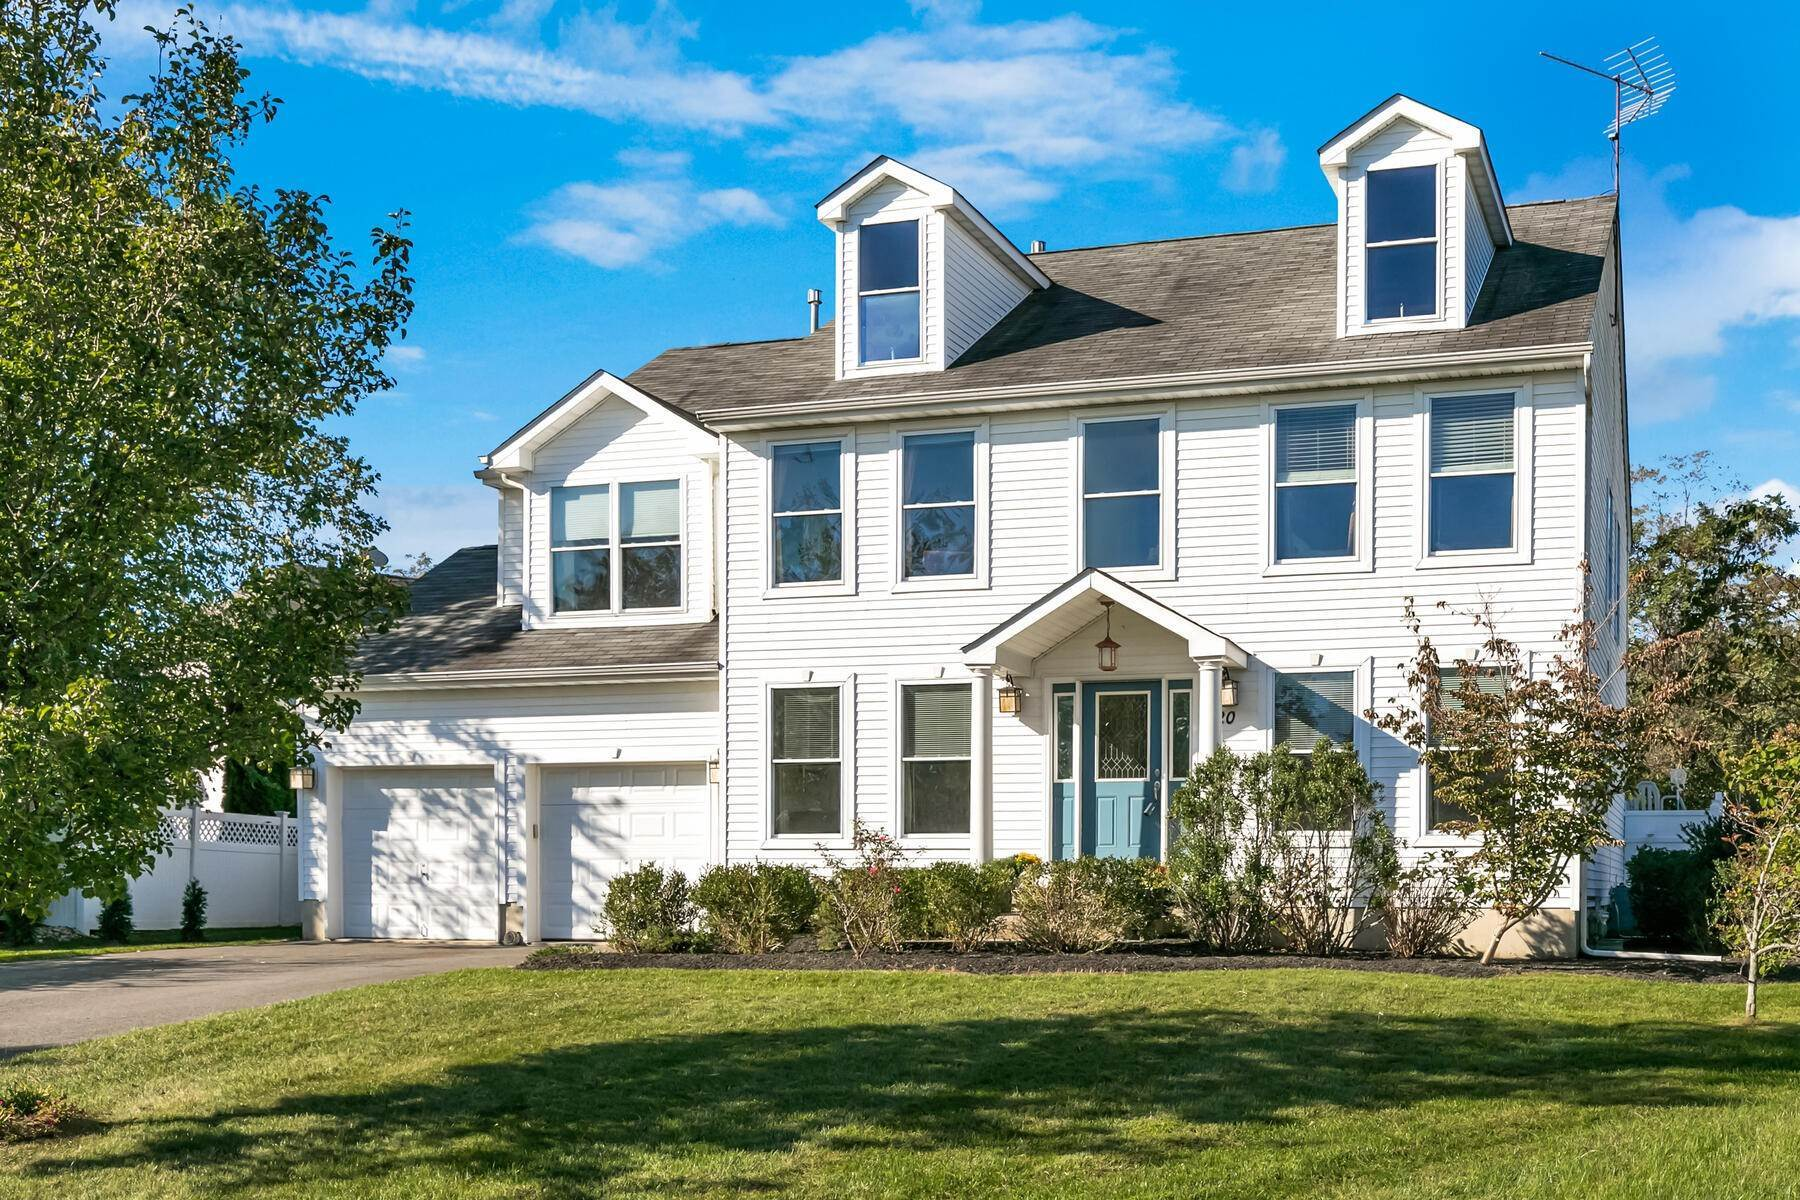 Single Family Homes for Sale at Beautiful Prima Built Center Hall Colonial 520 Adamsway Court Toms River, New Jersey 08753 United States